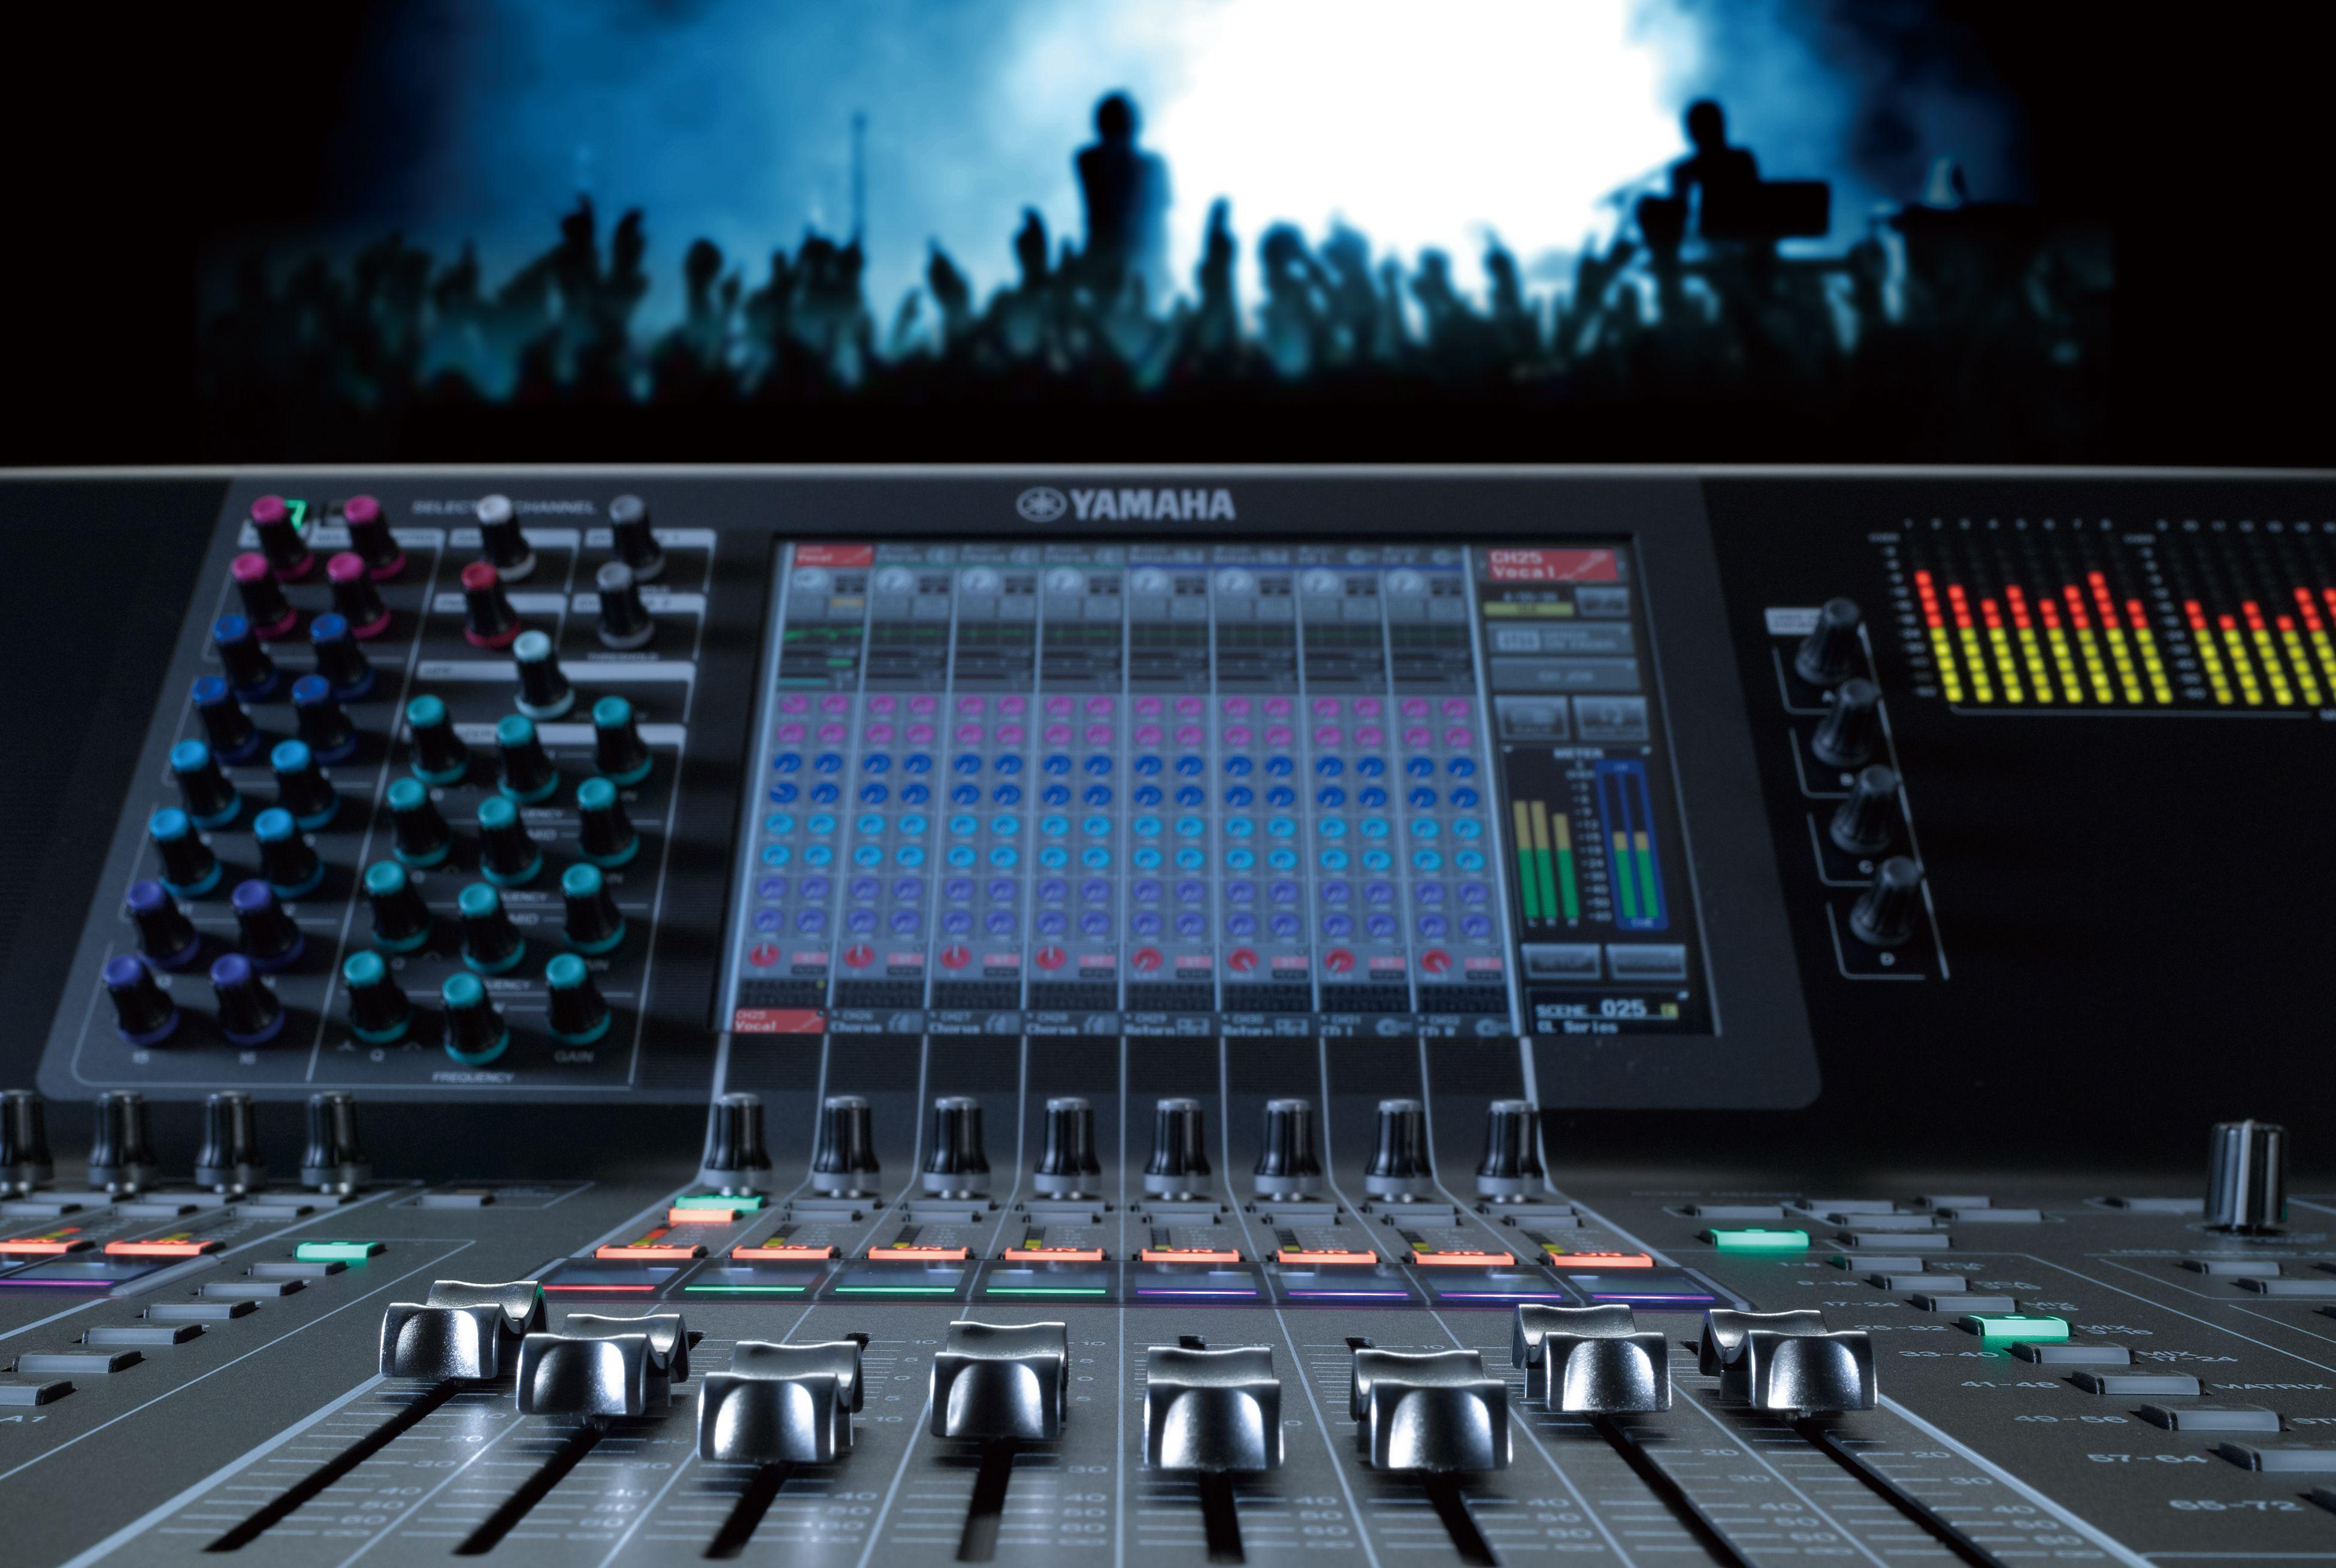 Mixer Sound System Wallpapers - Wallpaper Cave